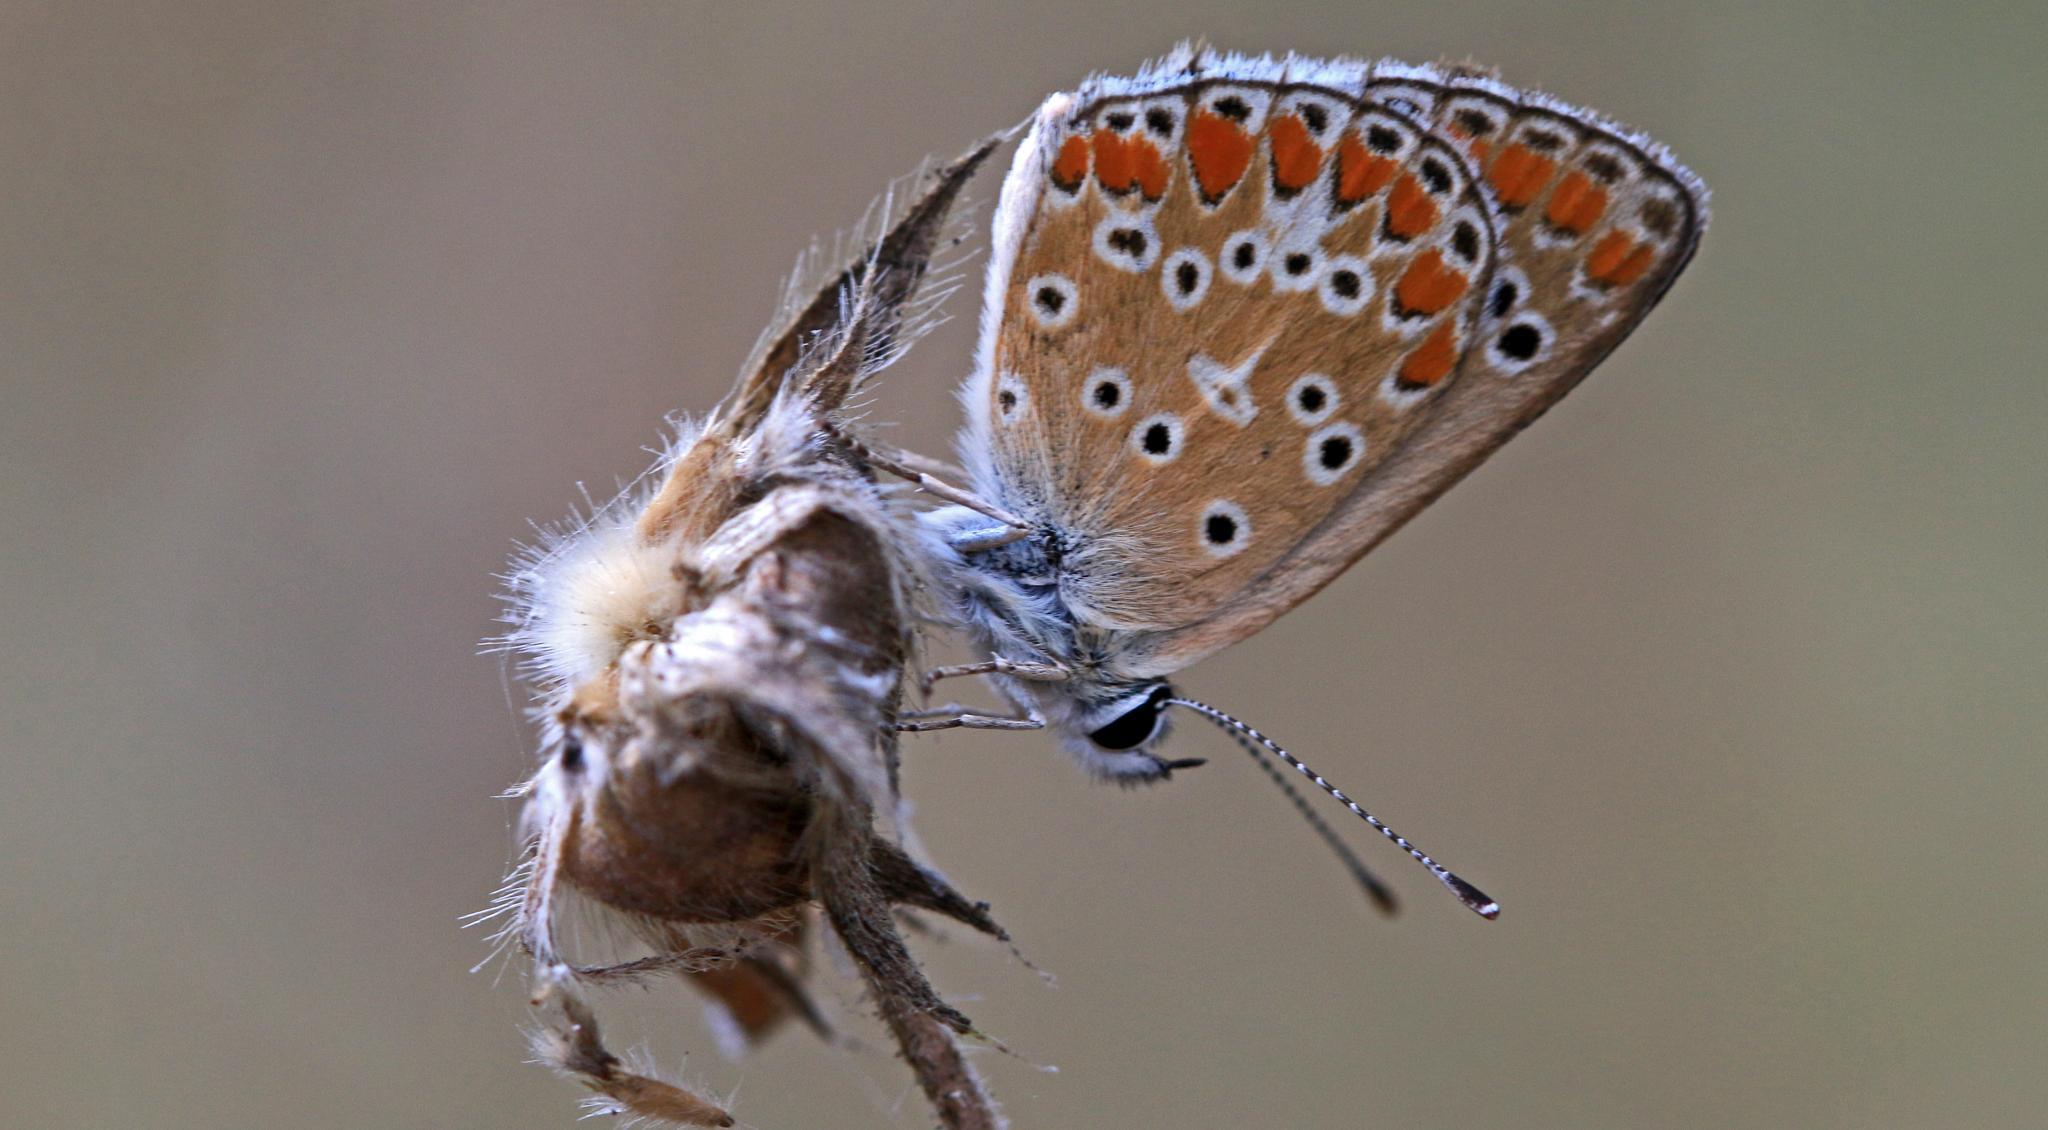 Brown argus by jason.fisher.98499